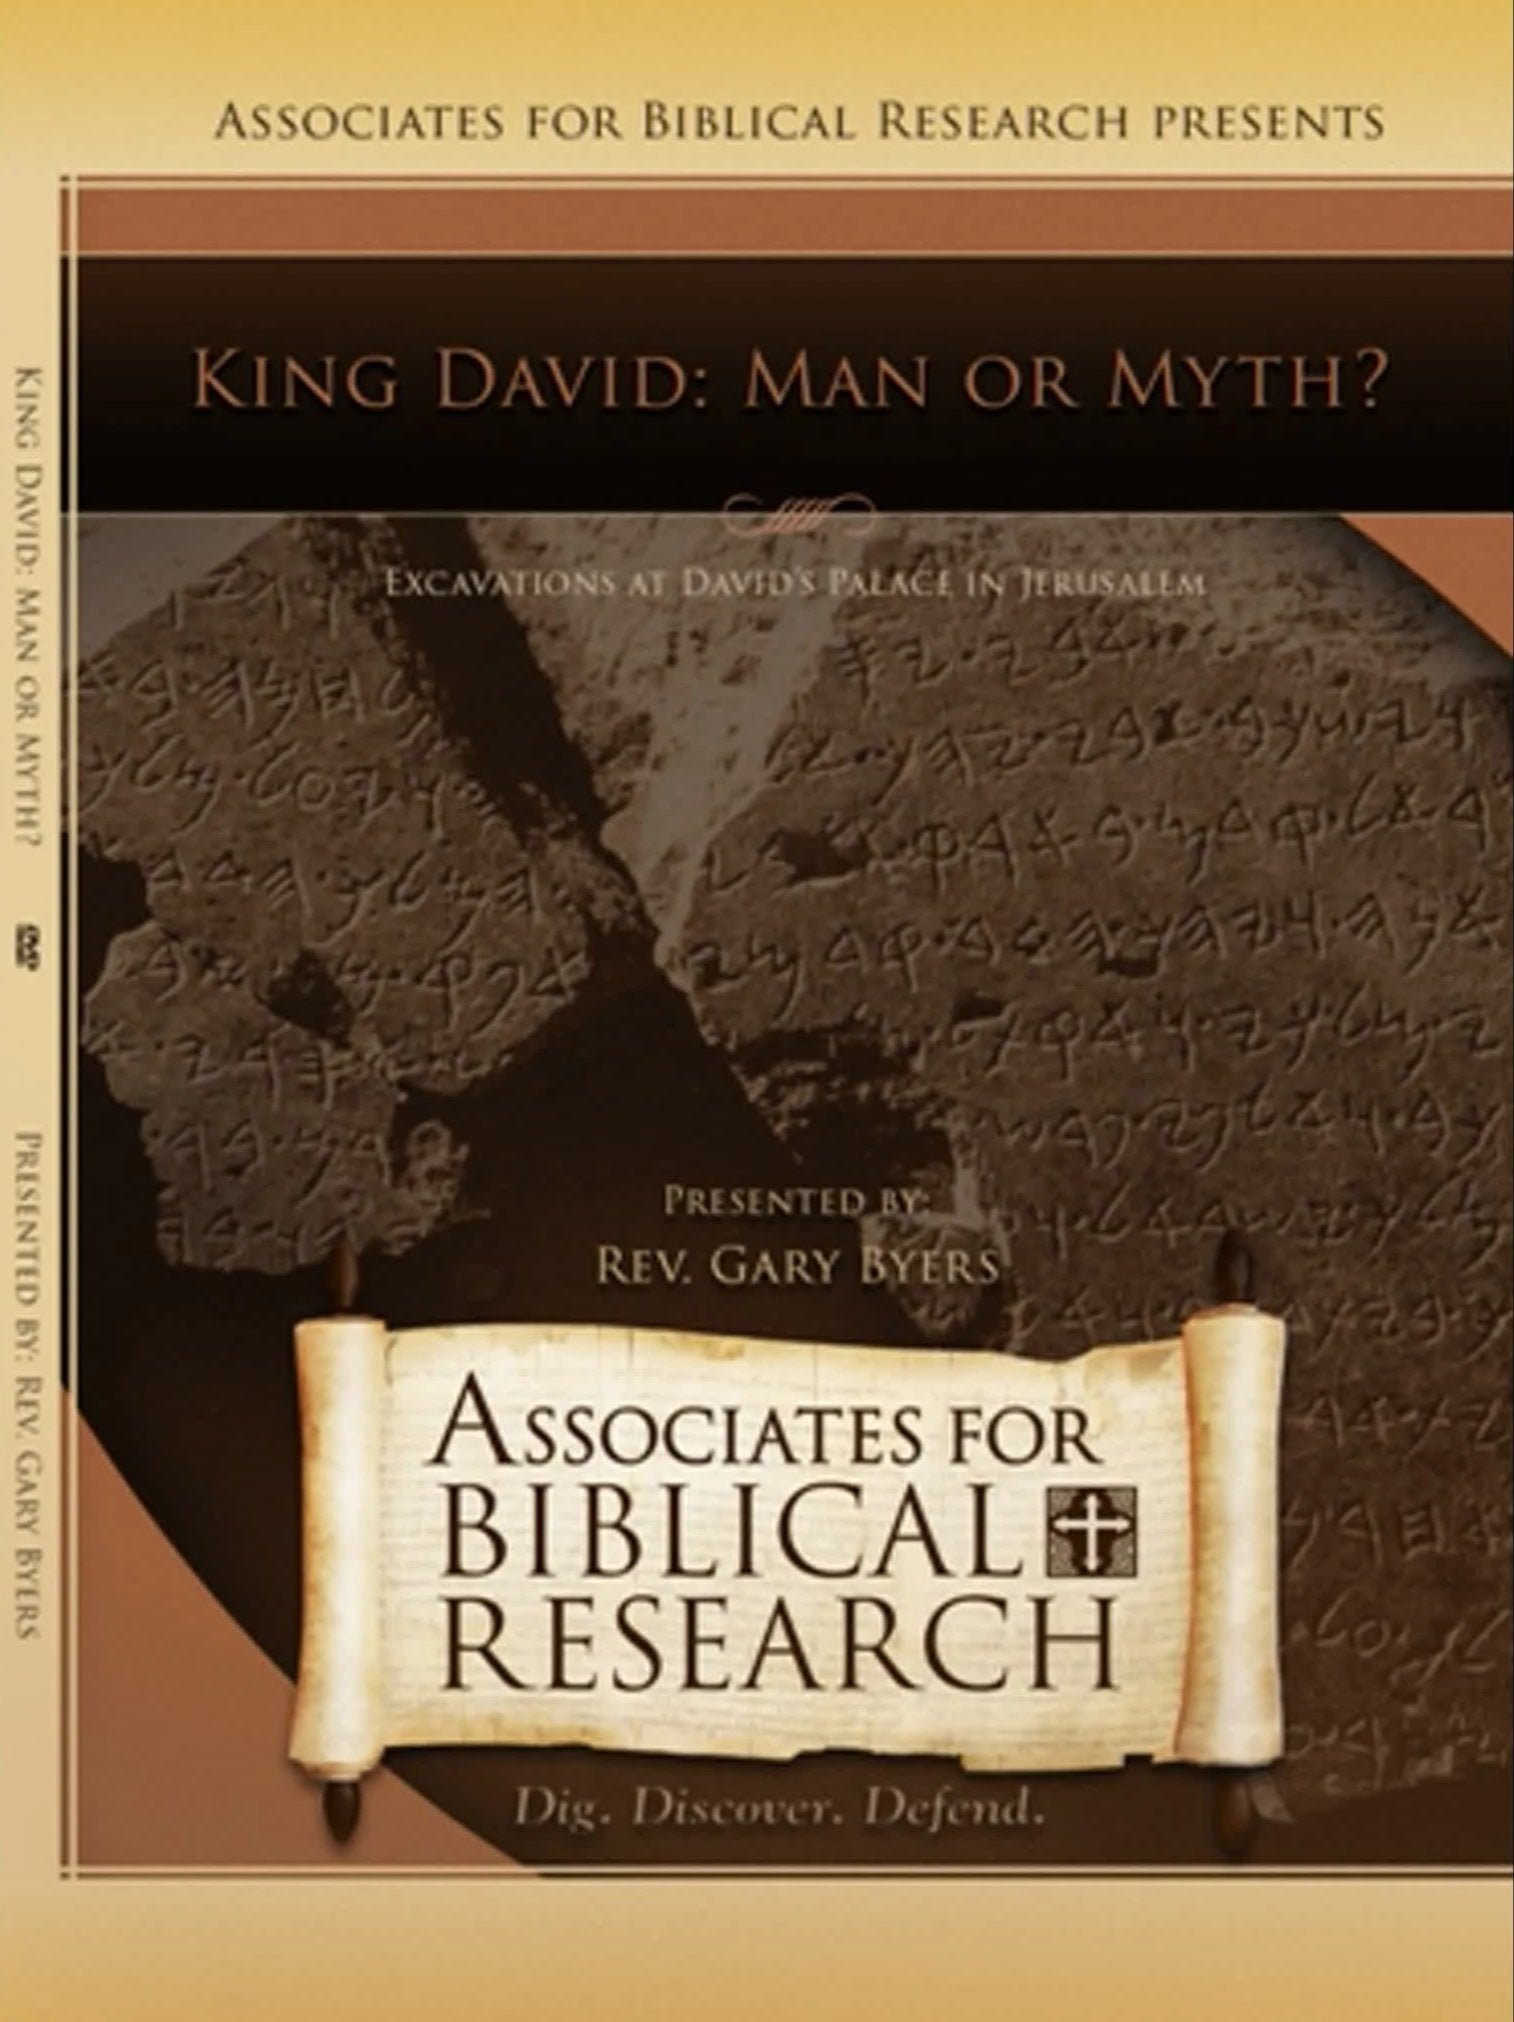 King David: Man or Myth? DVD